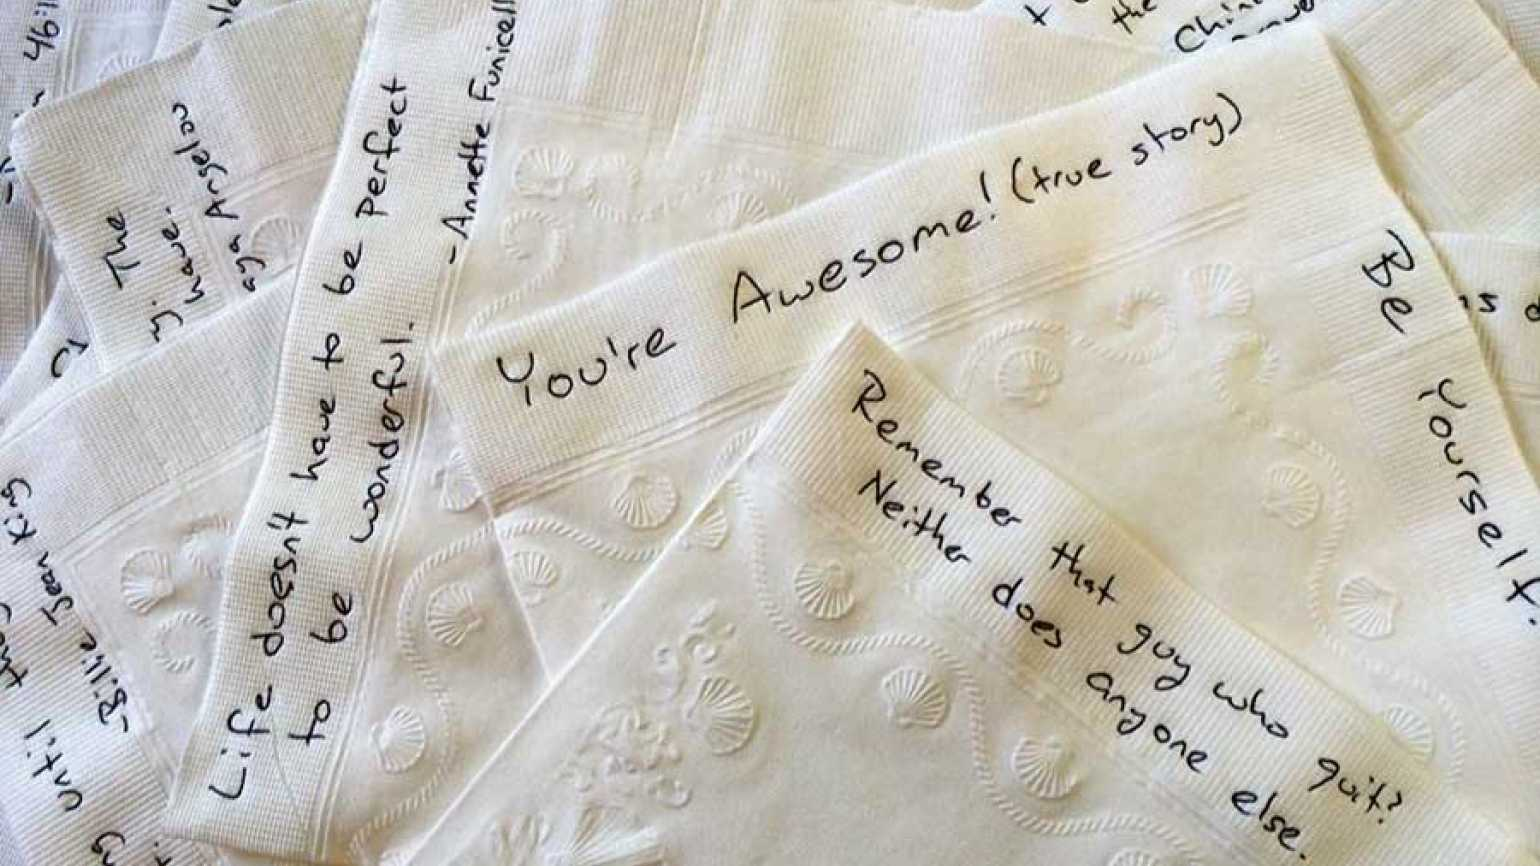 Image result for Napkin Notes of love